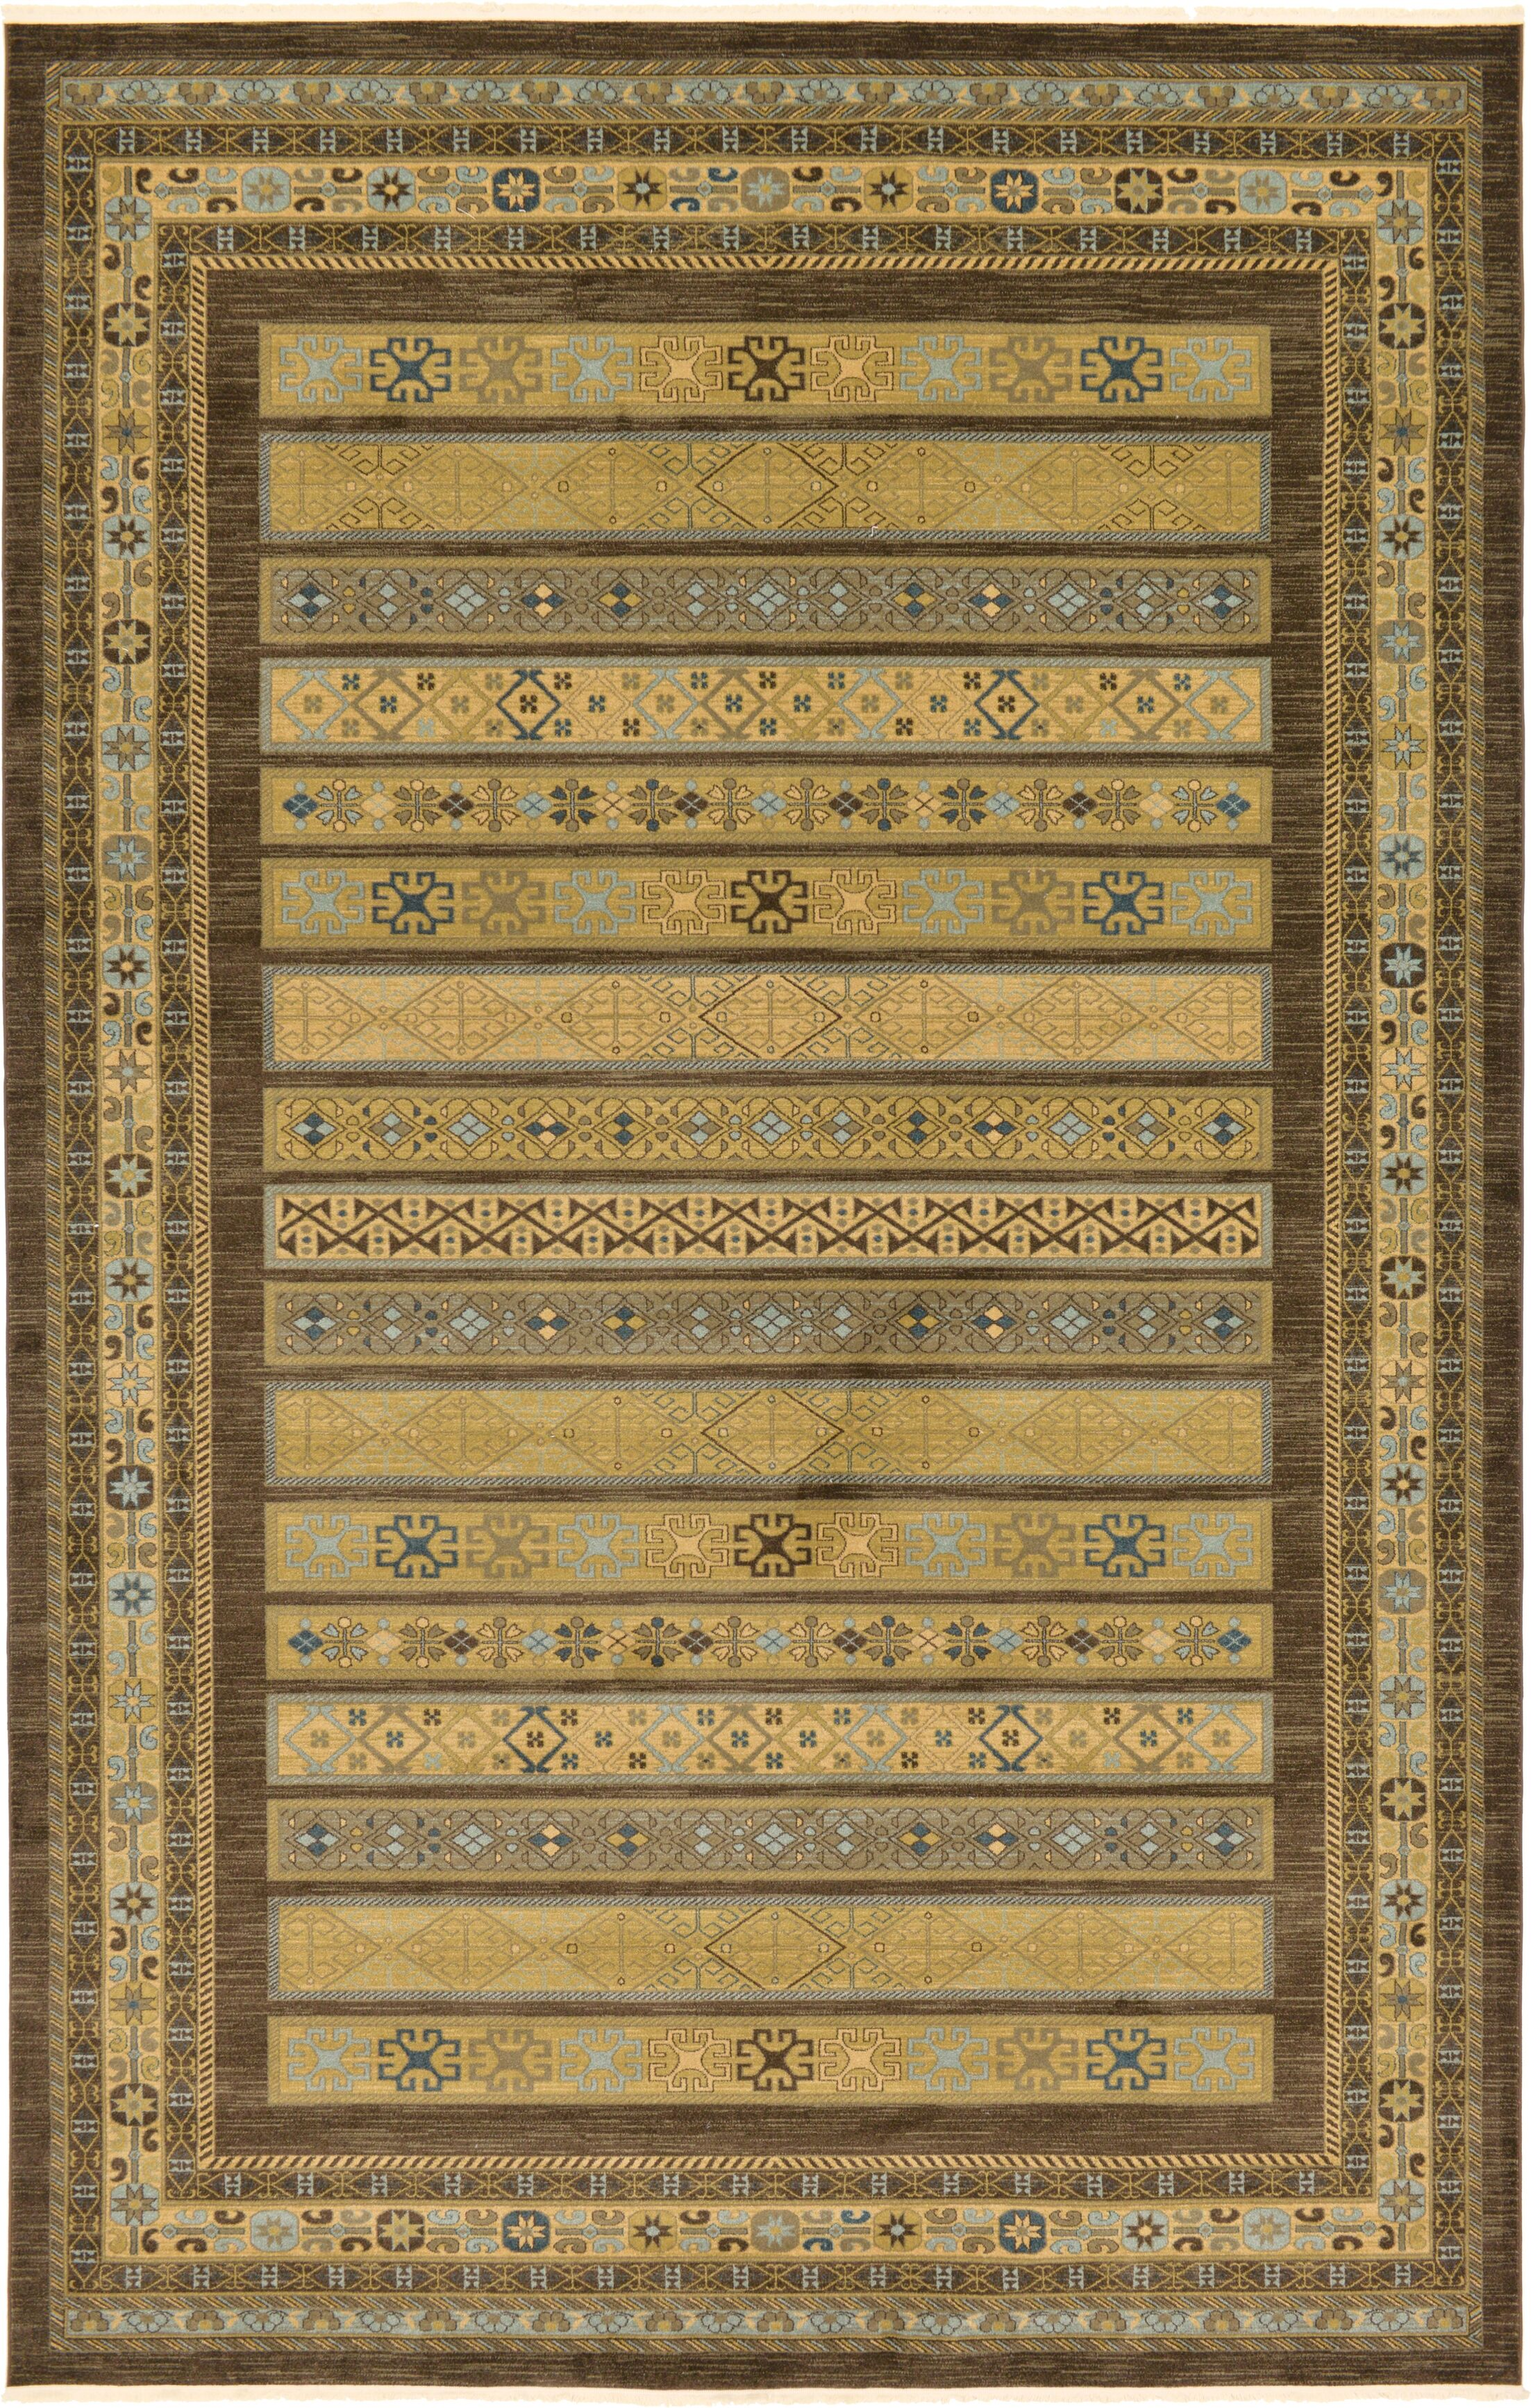 Foret Noire Brown Area Rug Rug Size: Rectangle 10'6